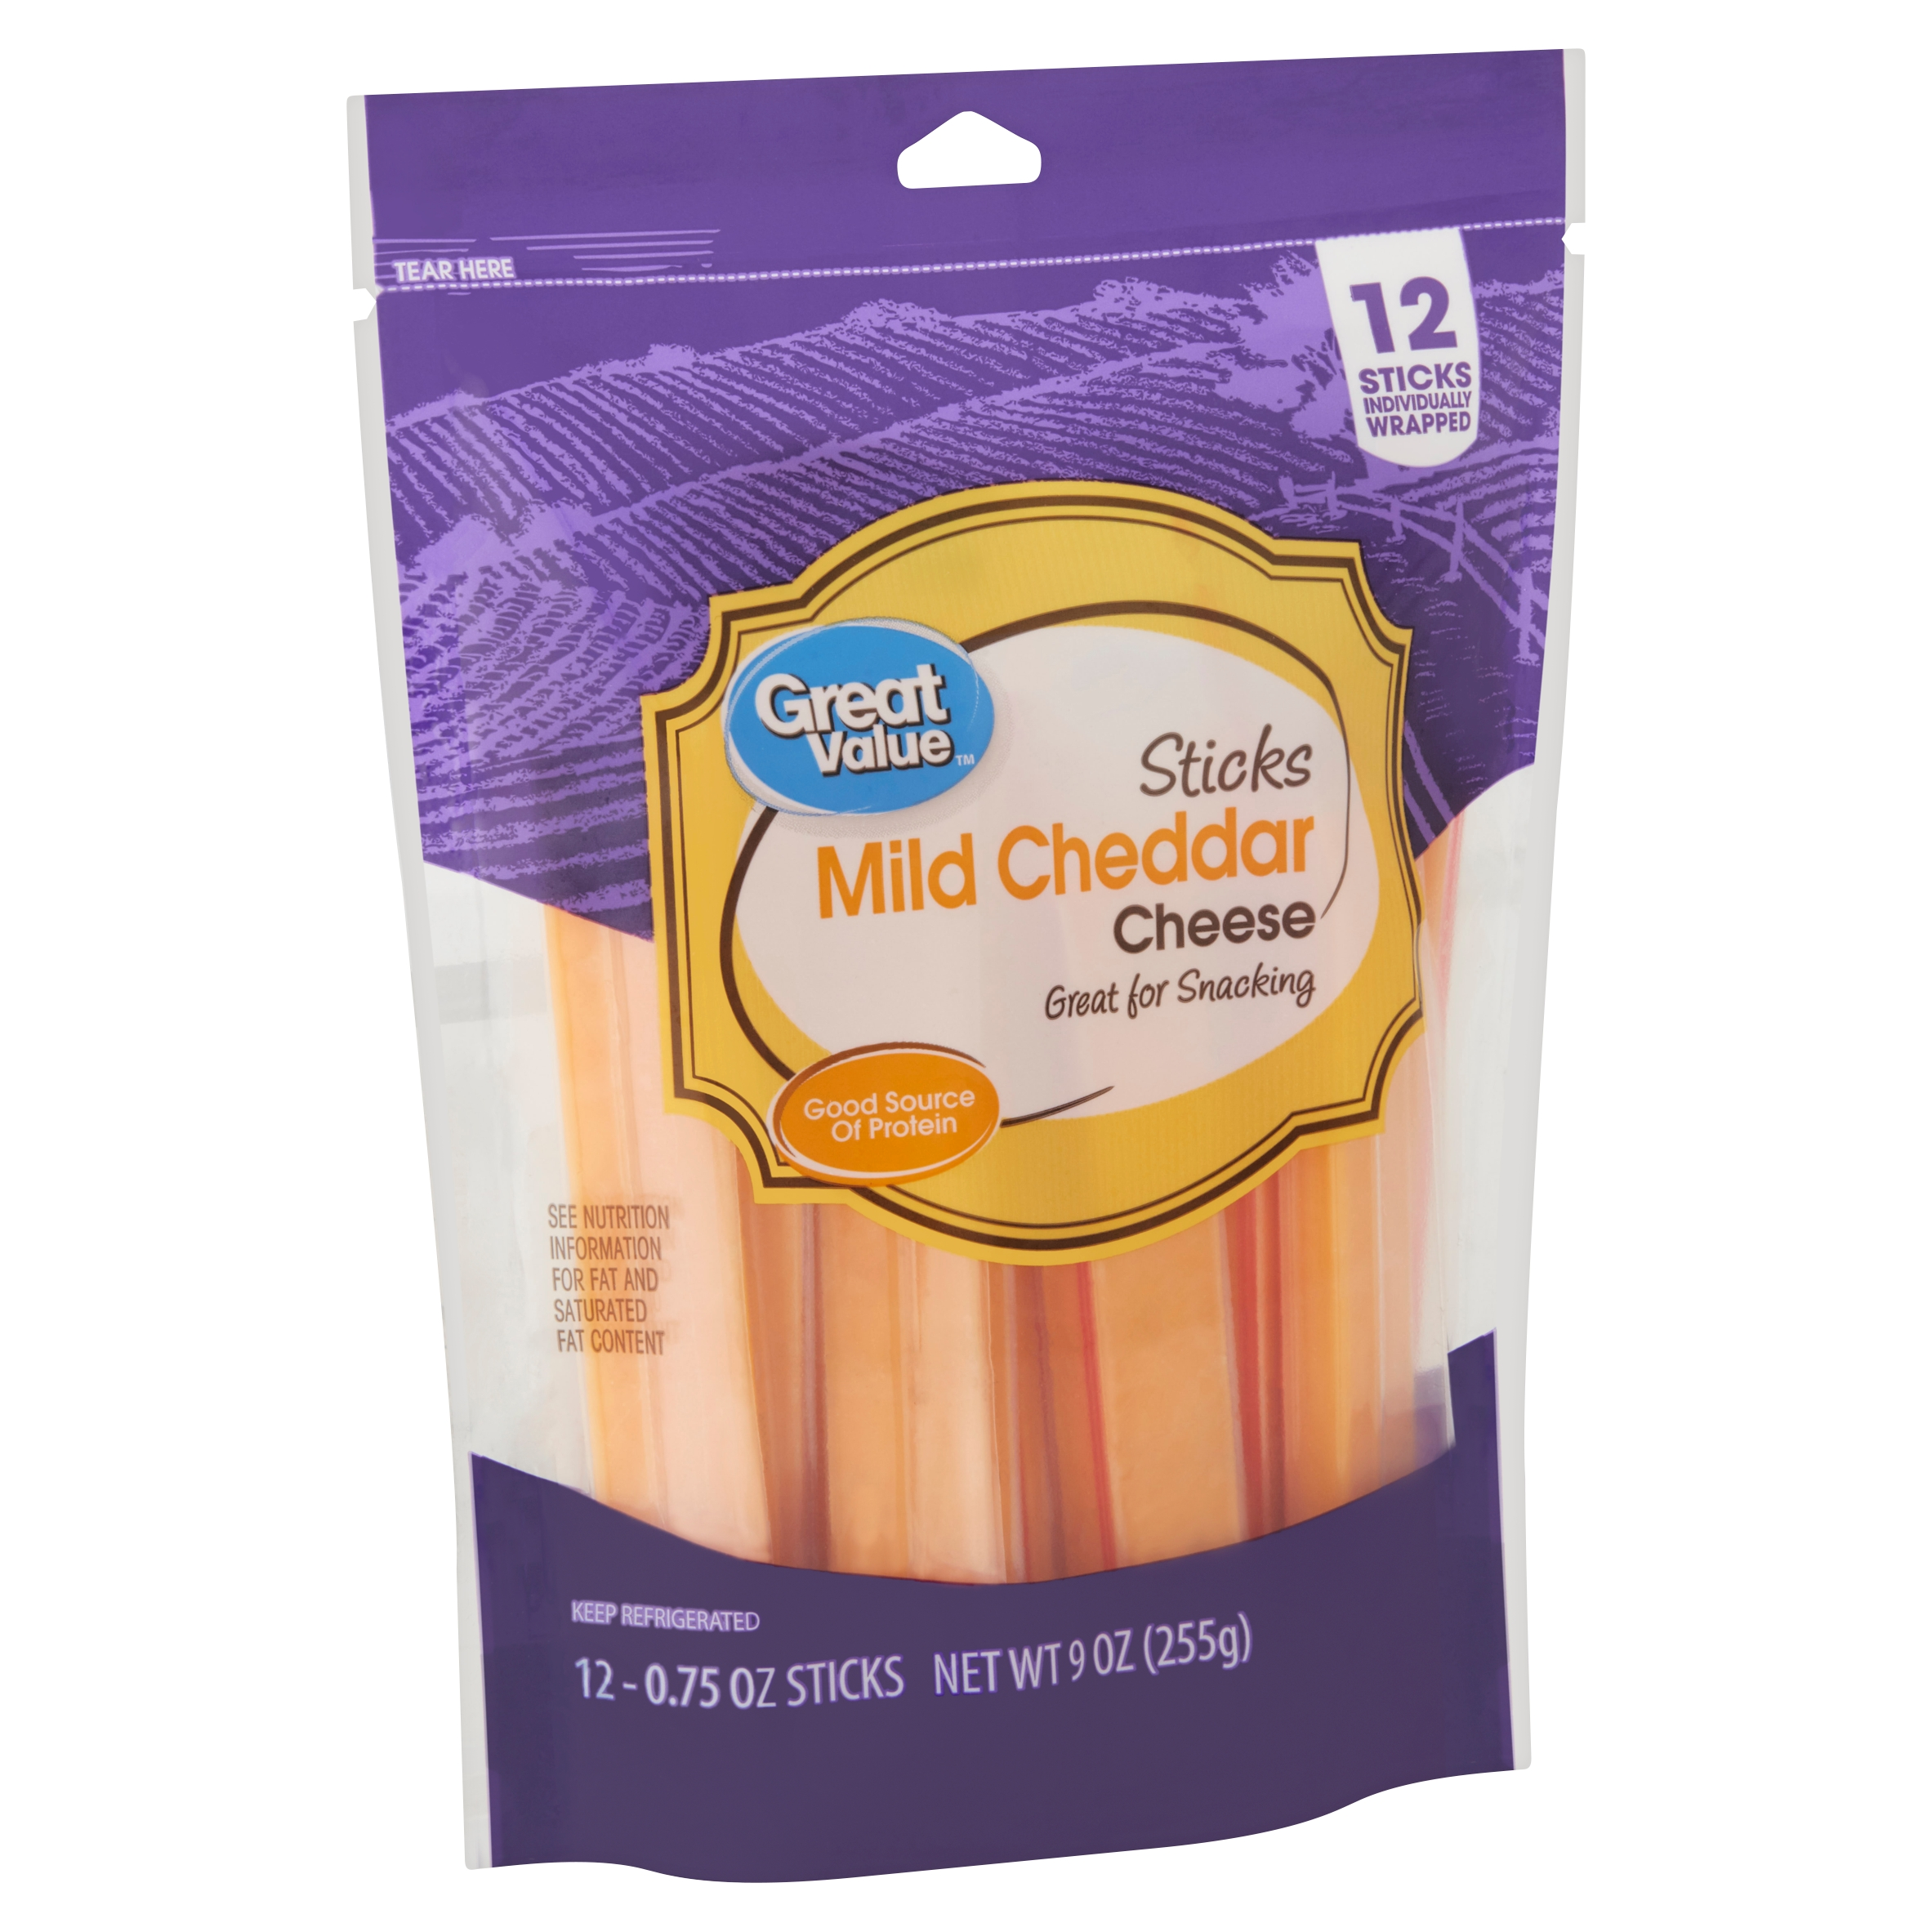 Great Value Sticks Mild Cheddar Cheese, 0.75 oz, 12 count